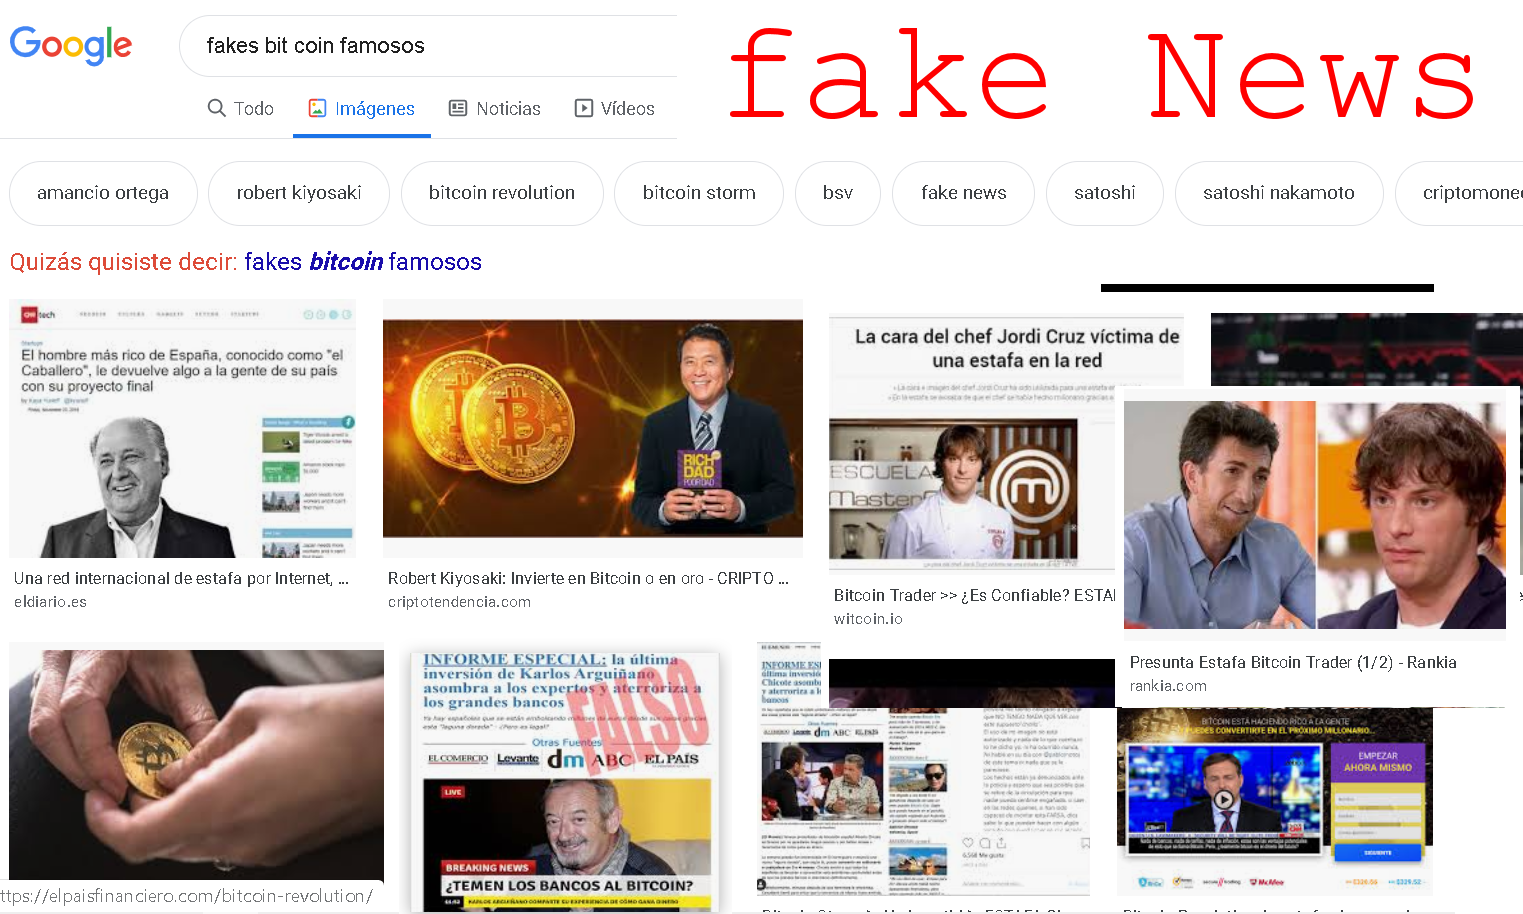 fake news famosos criptomonedas